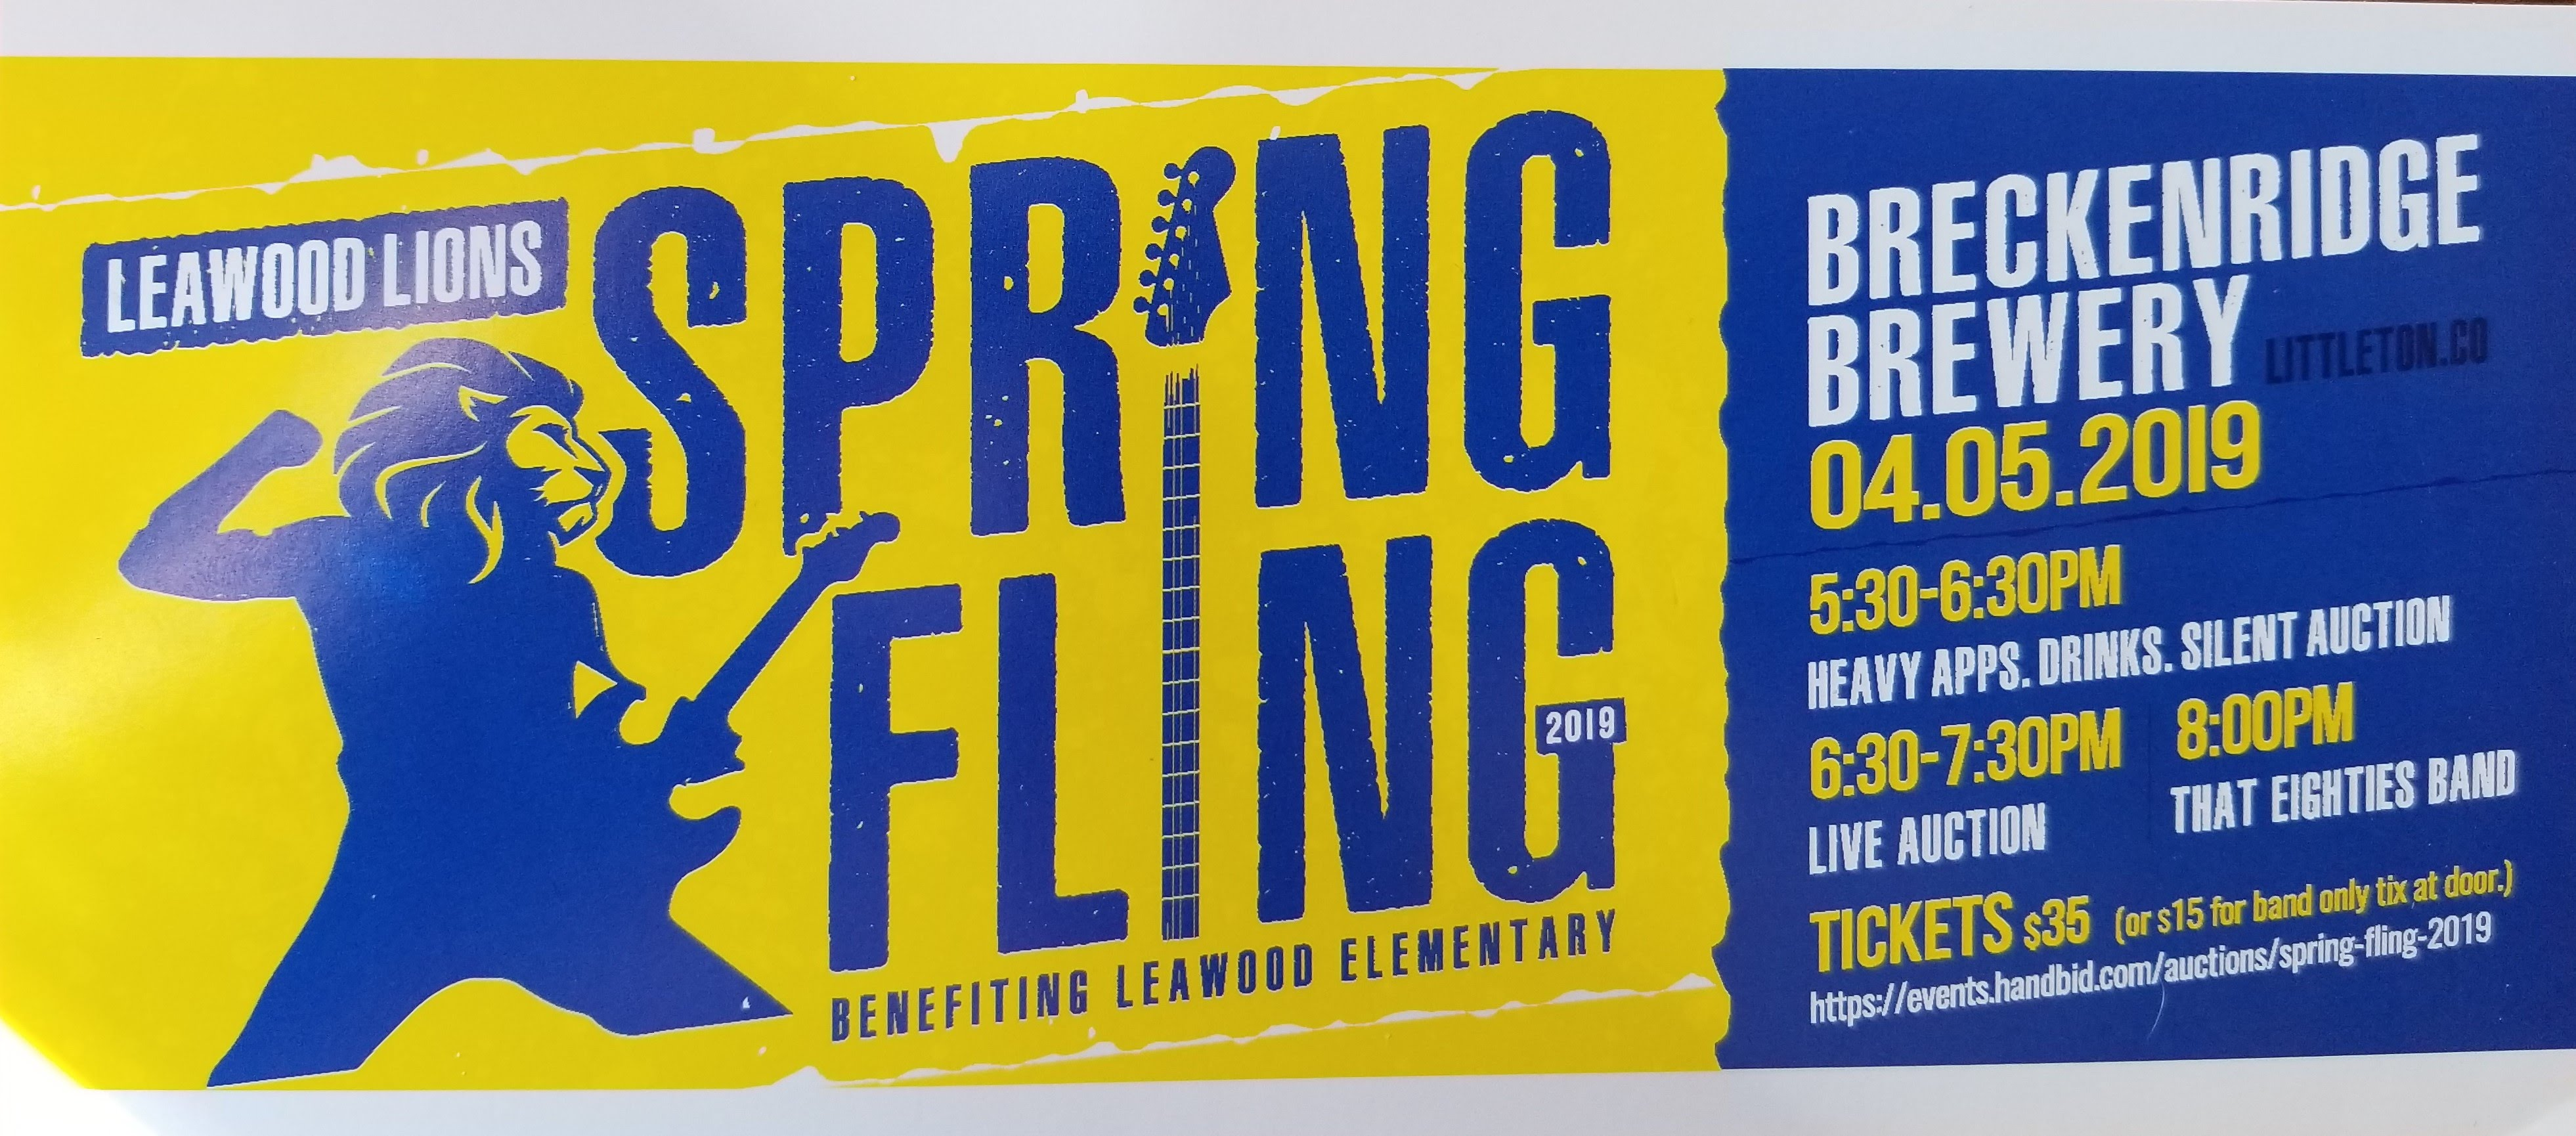 https://events.handbid.com/auctions/spring-fling-2019